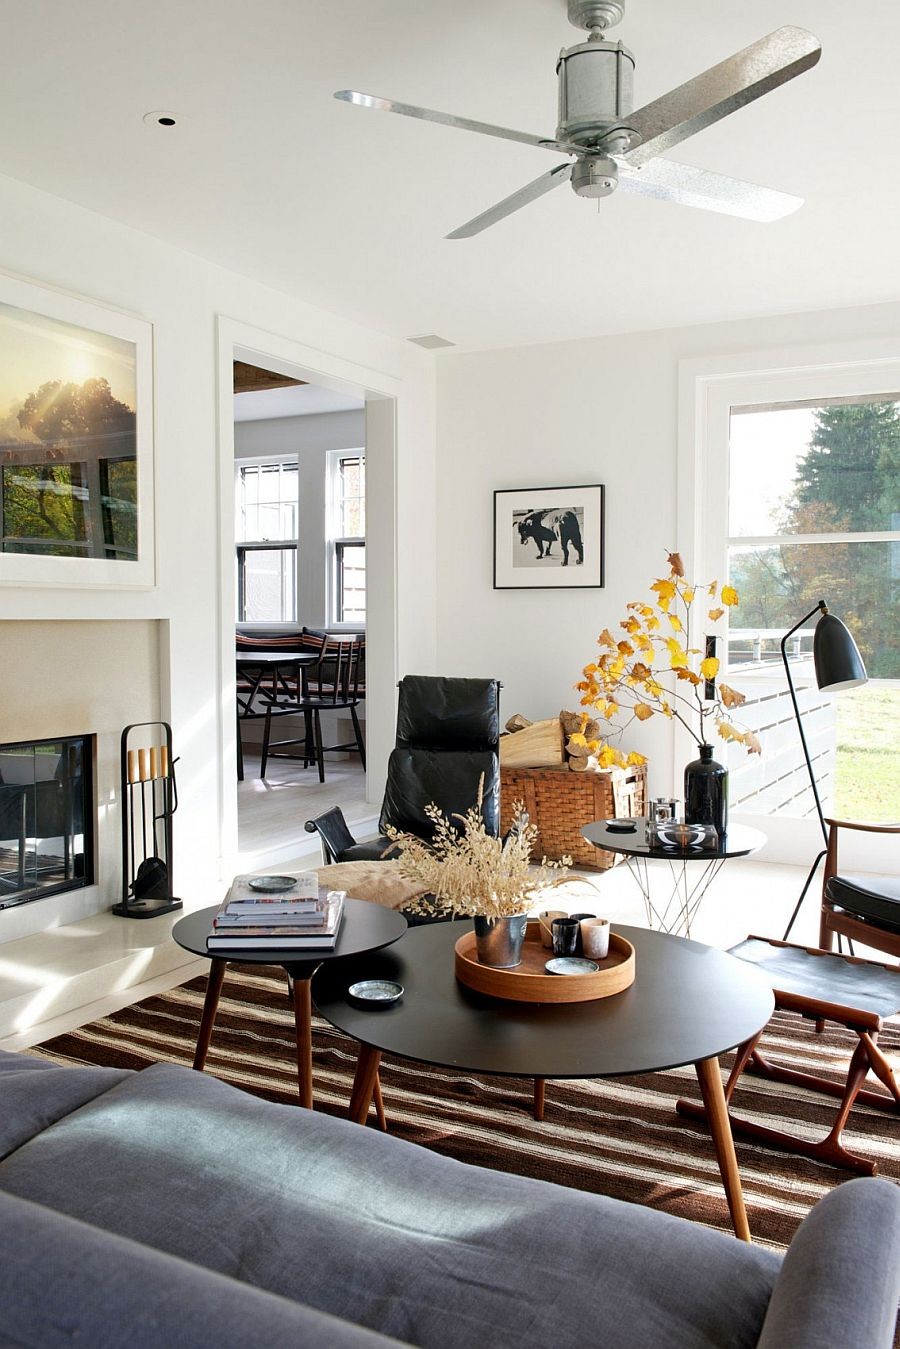 Midcentury bungalow in new york delights with vintage panache for New york home decorations